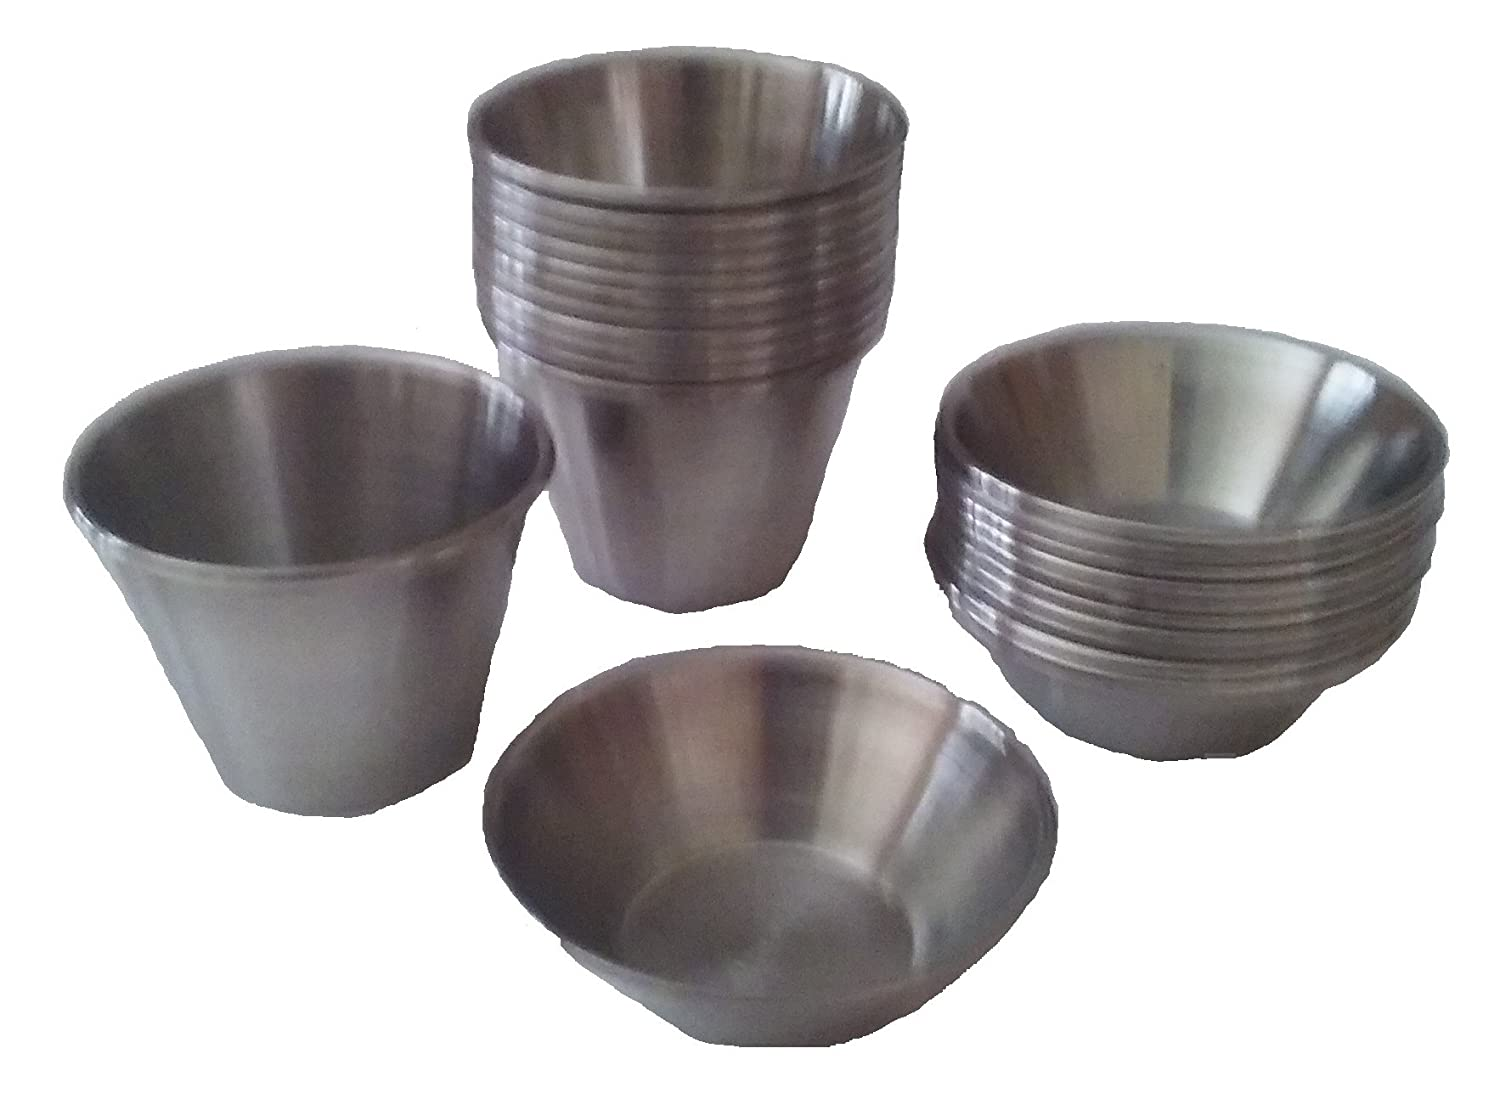 Small Cups for Condiments and Sauces; Stainless Steel; Bundle of 1.5 oz and 2.5 oz sizes; each size with 12 cups (24 total cups) Thunder Group